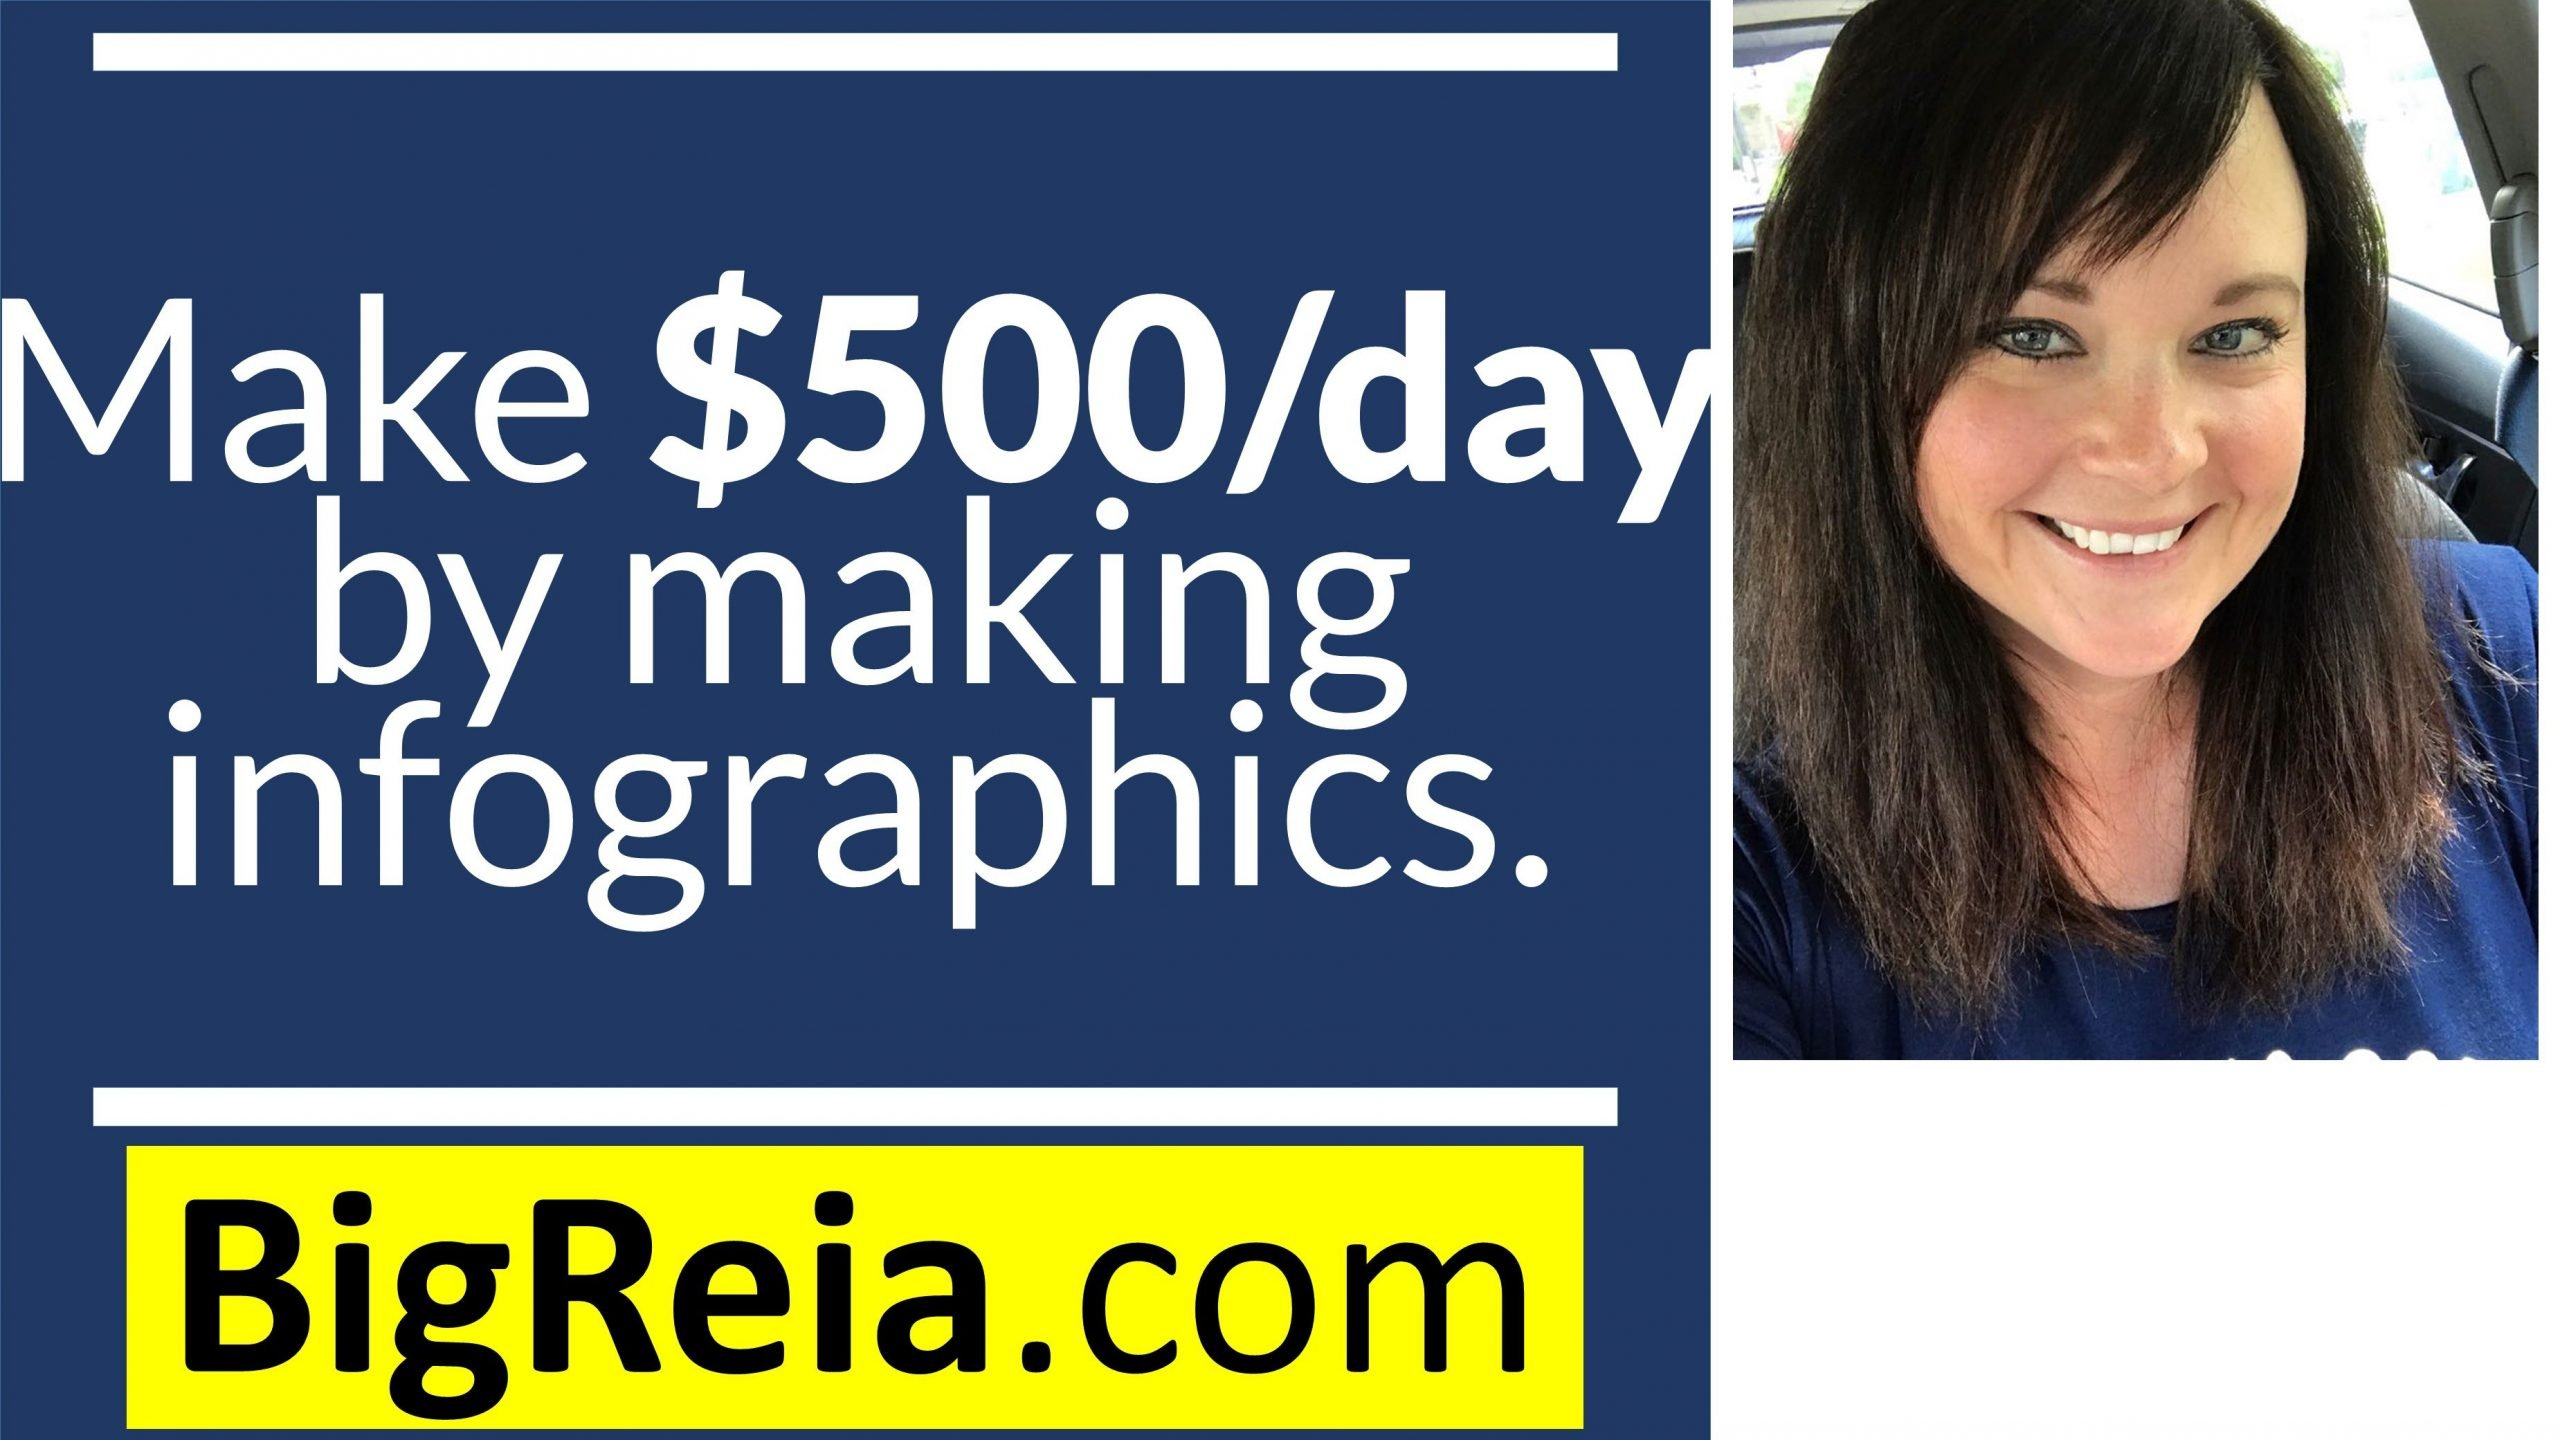 How to make an extra $500/day by making infographics, our Special Needs Kids ROCK!